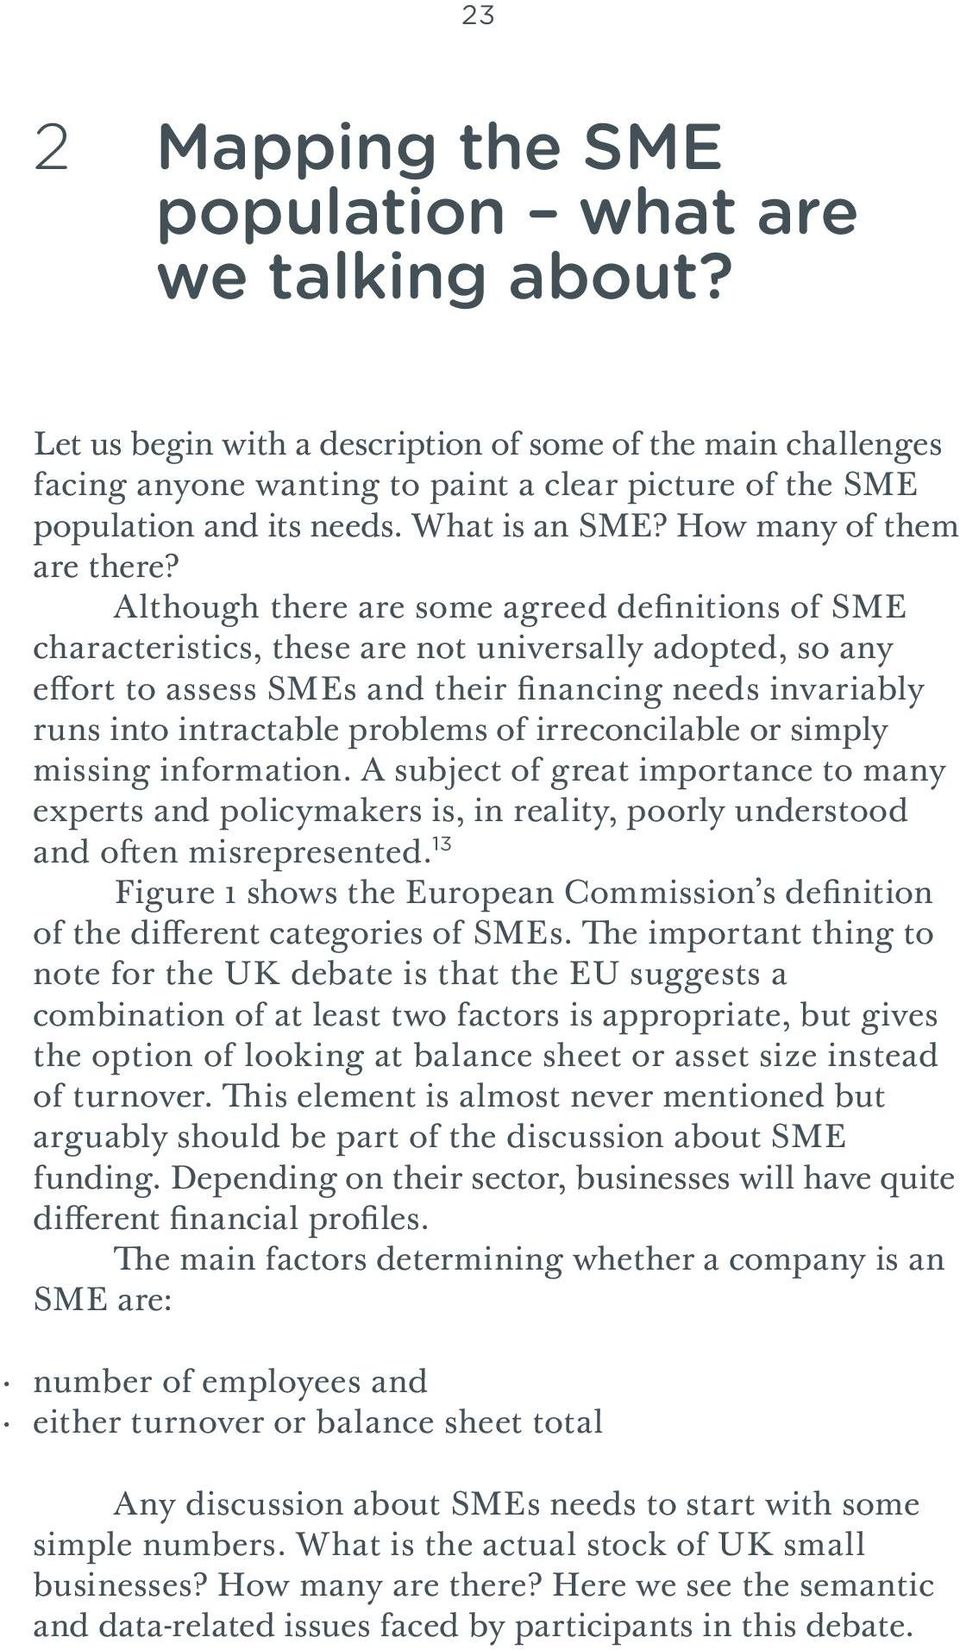 Although there are some agreed definitions of SME characteristics, these are not universally adopted, so any effort to assess SMEs and their financing needs invariably runs into intractable problems